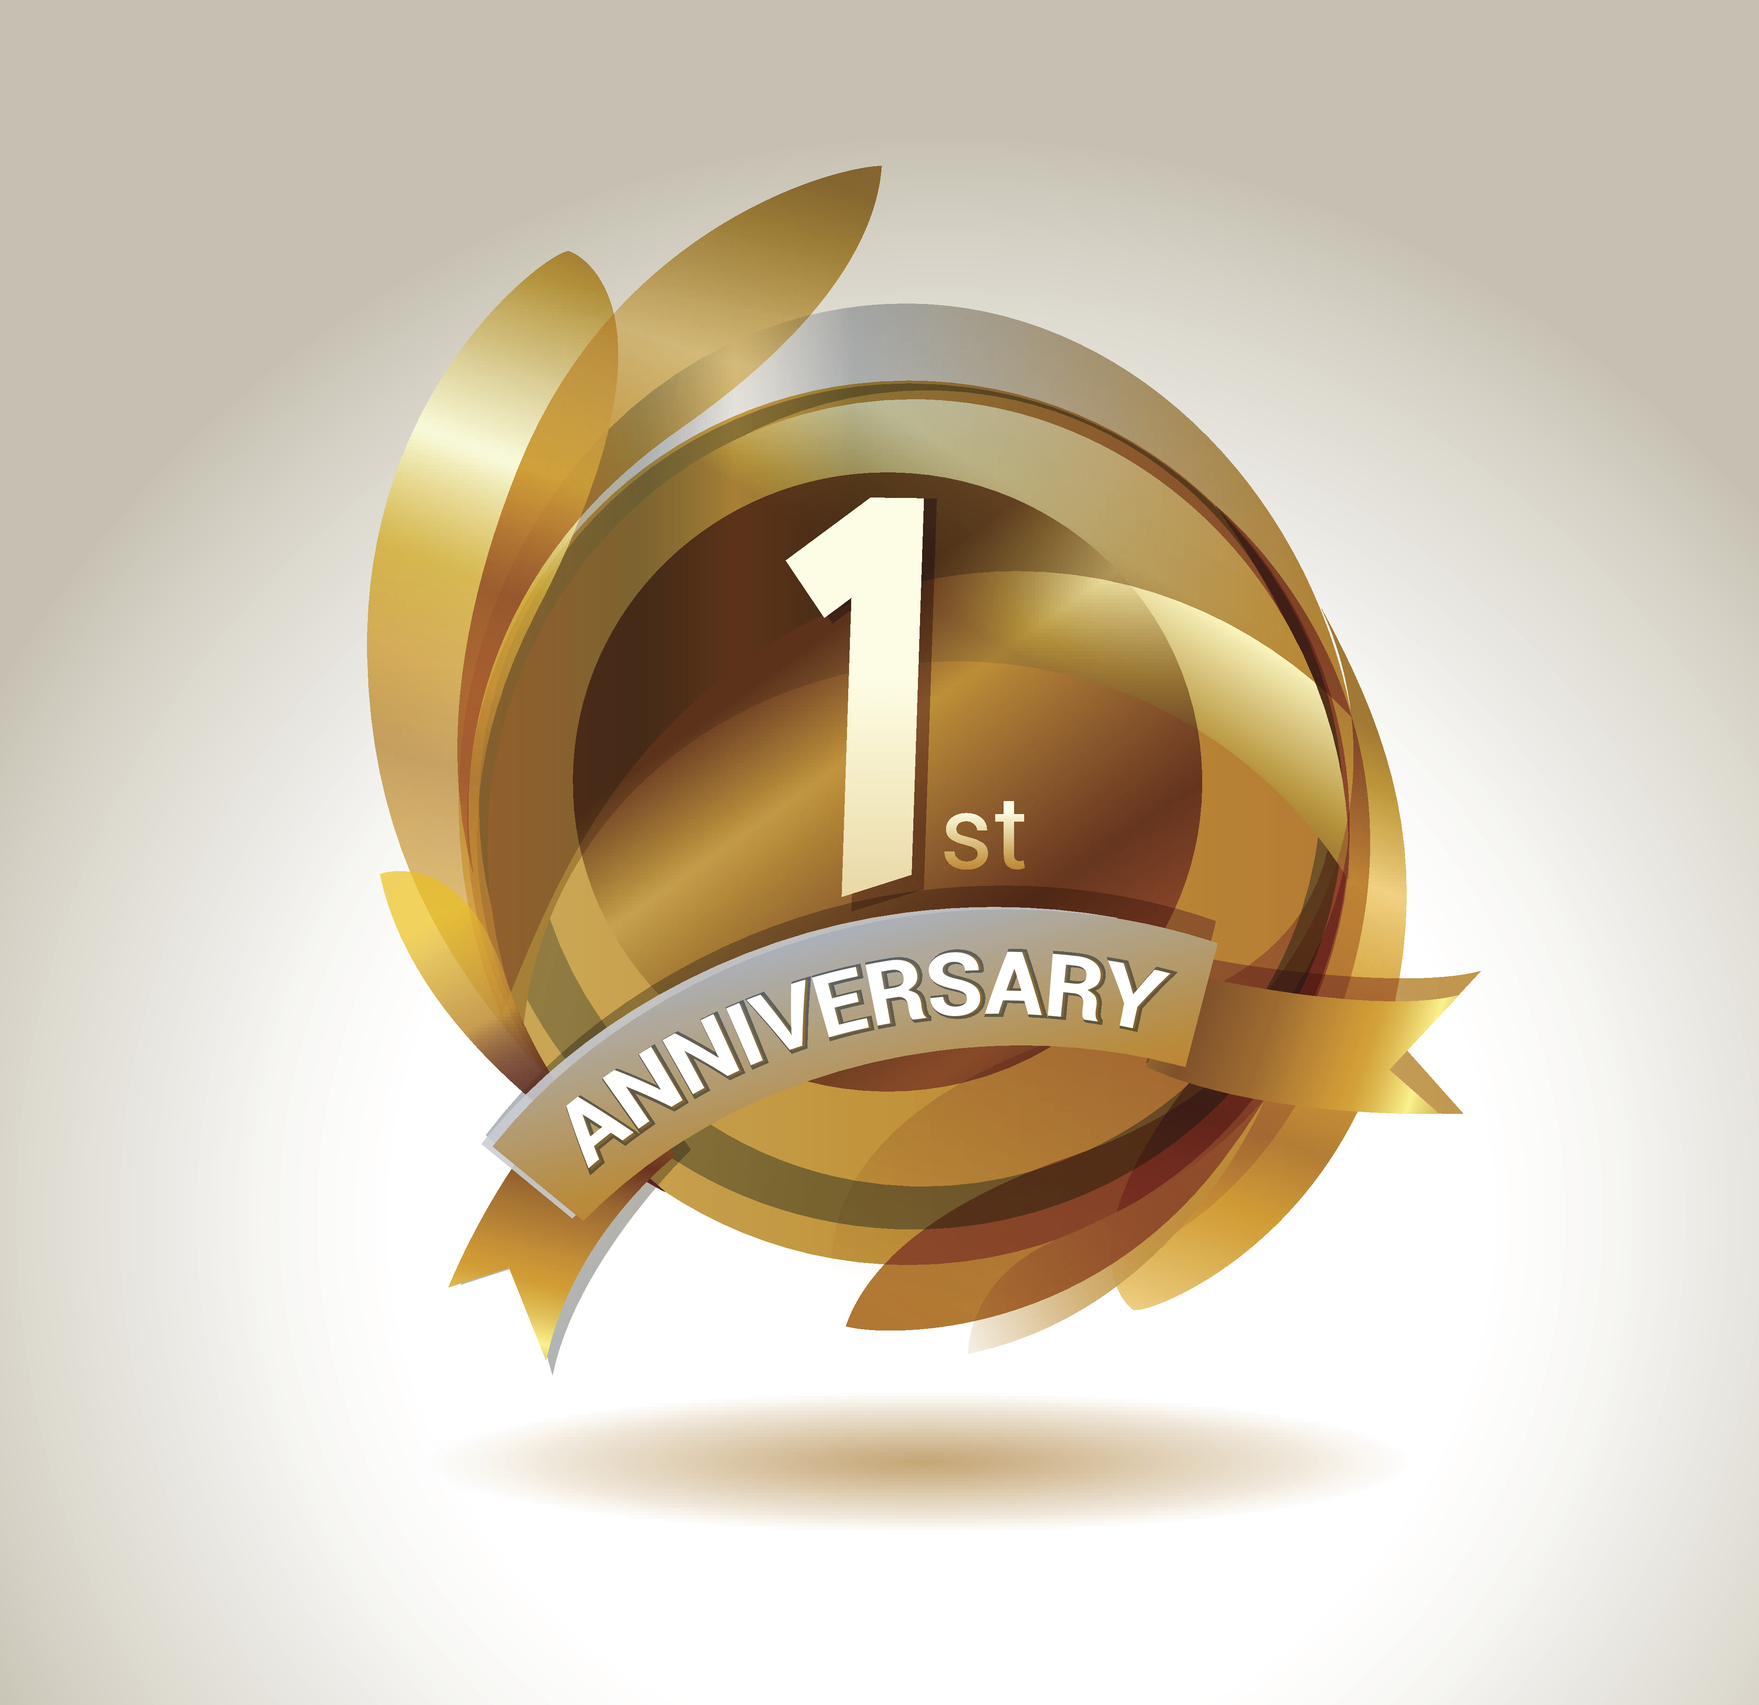 1st anniversary ribbon logo with golden circle and graphic elements aec living 2